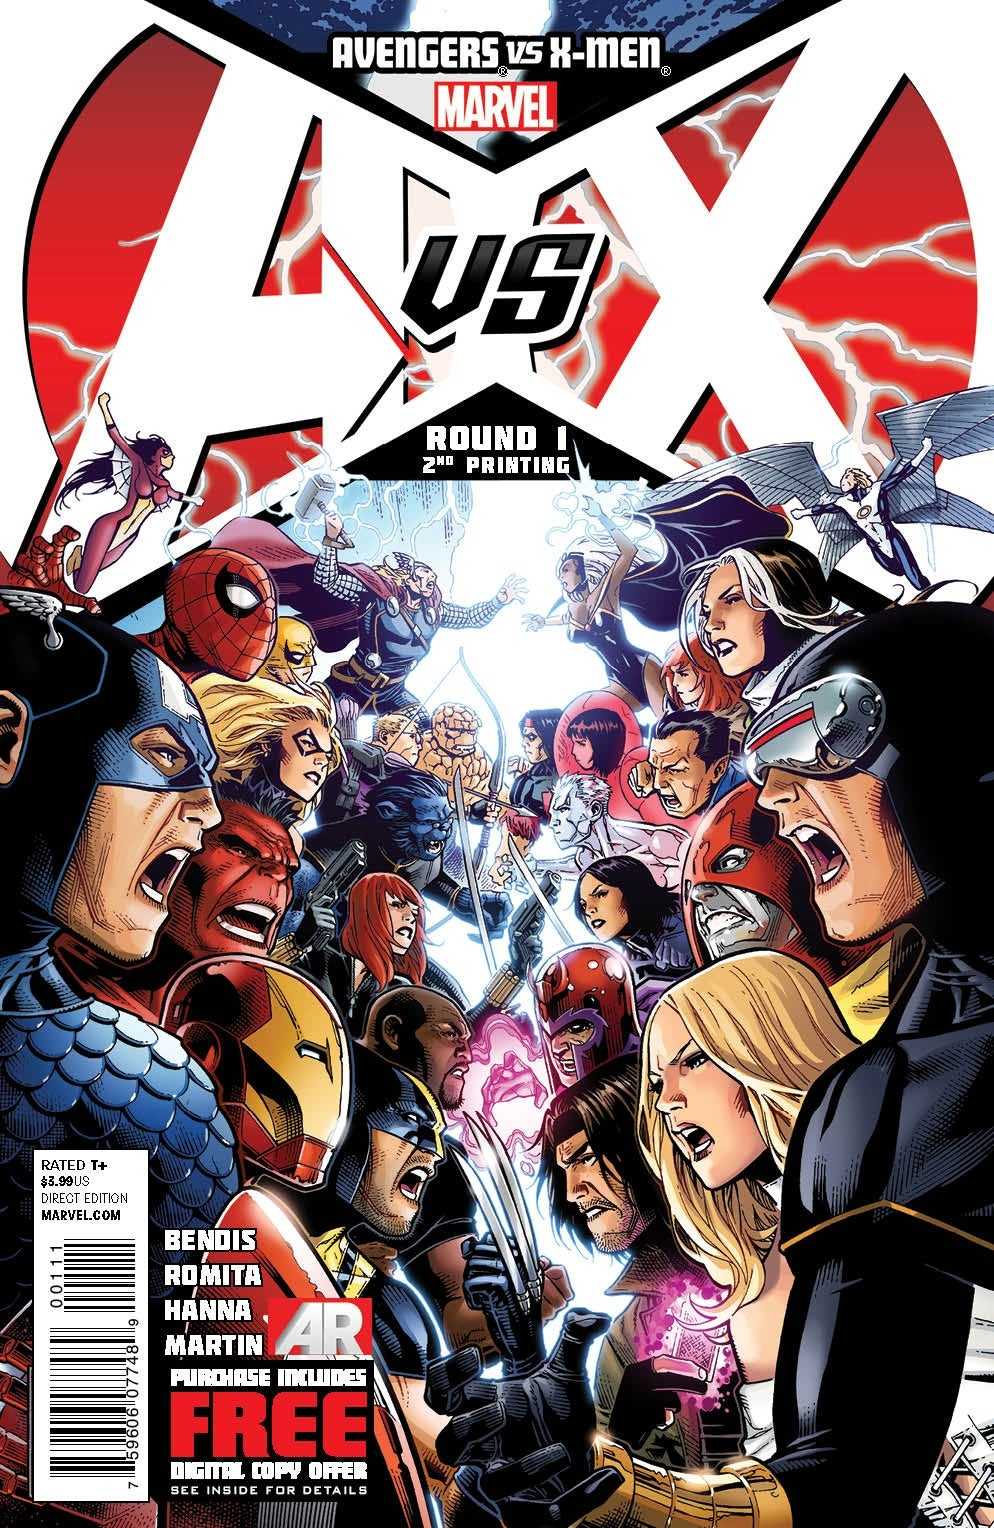 AvengersVSXMen_1_SecondPrintingCover